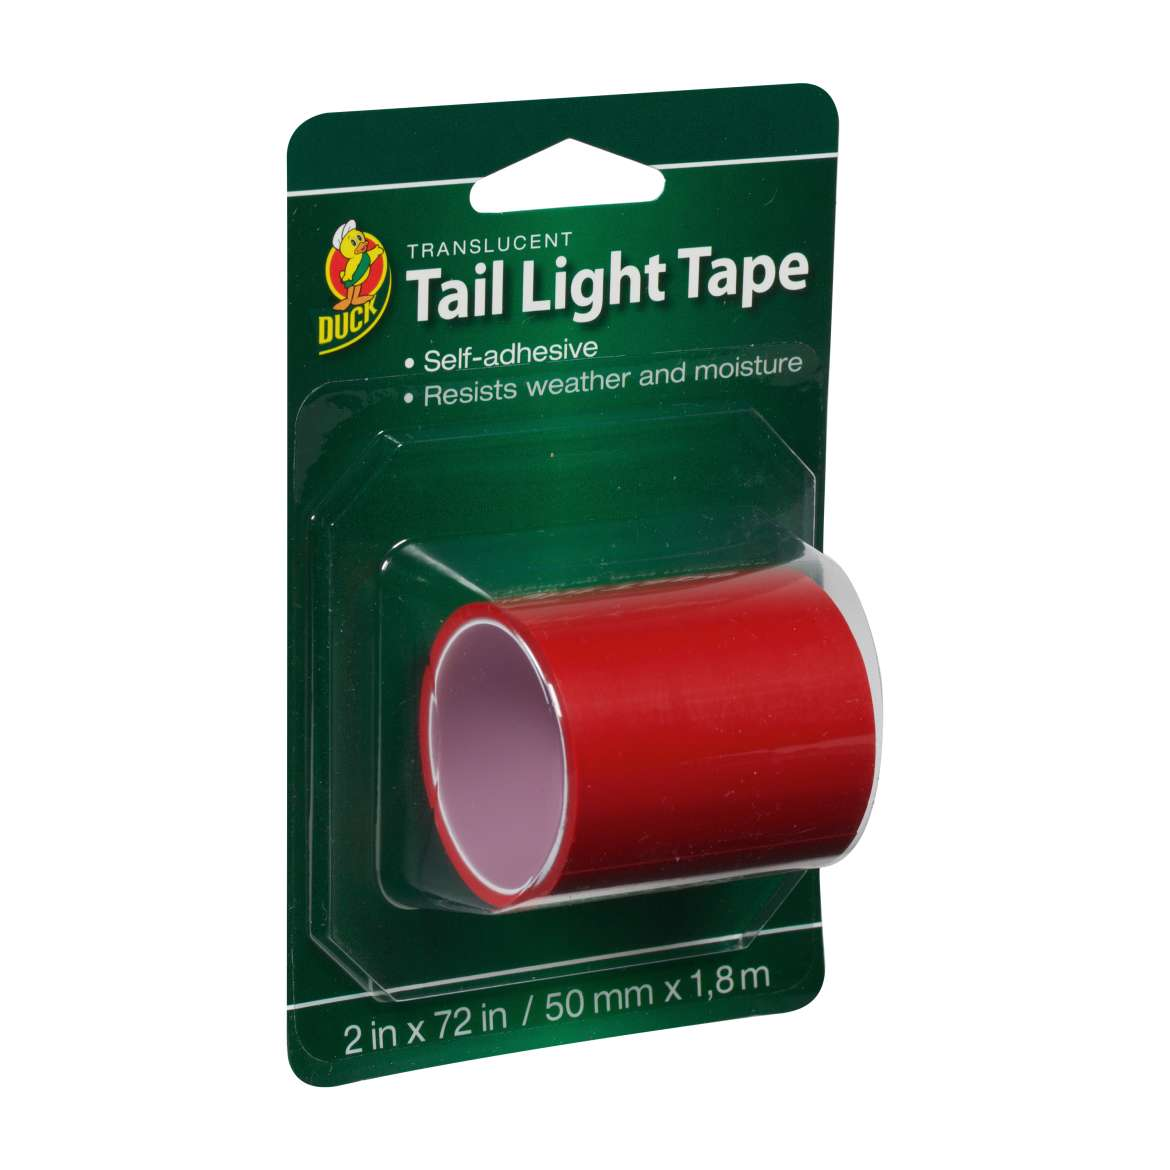 Tail Light Tape